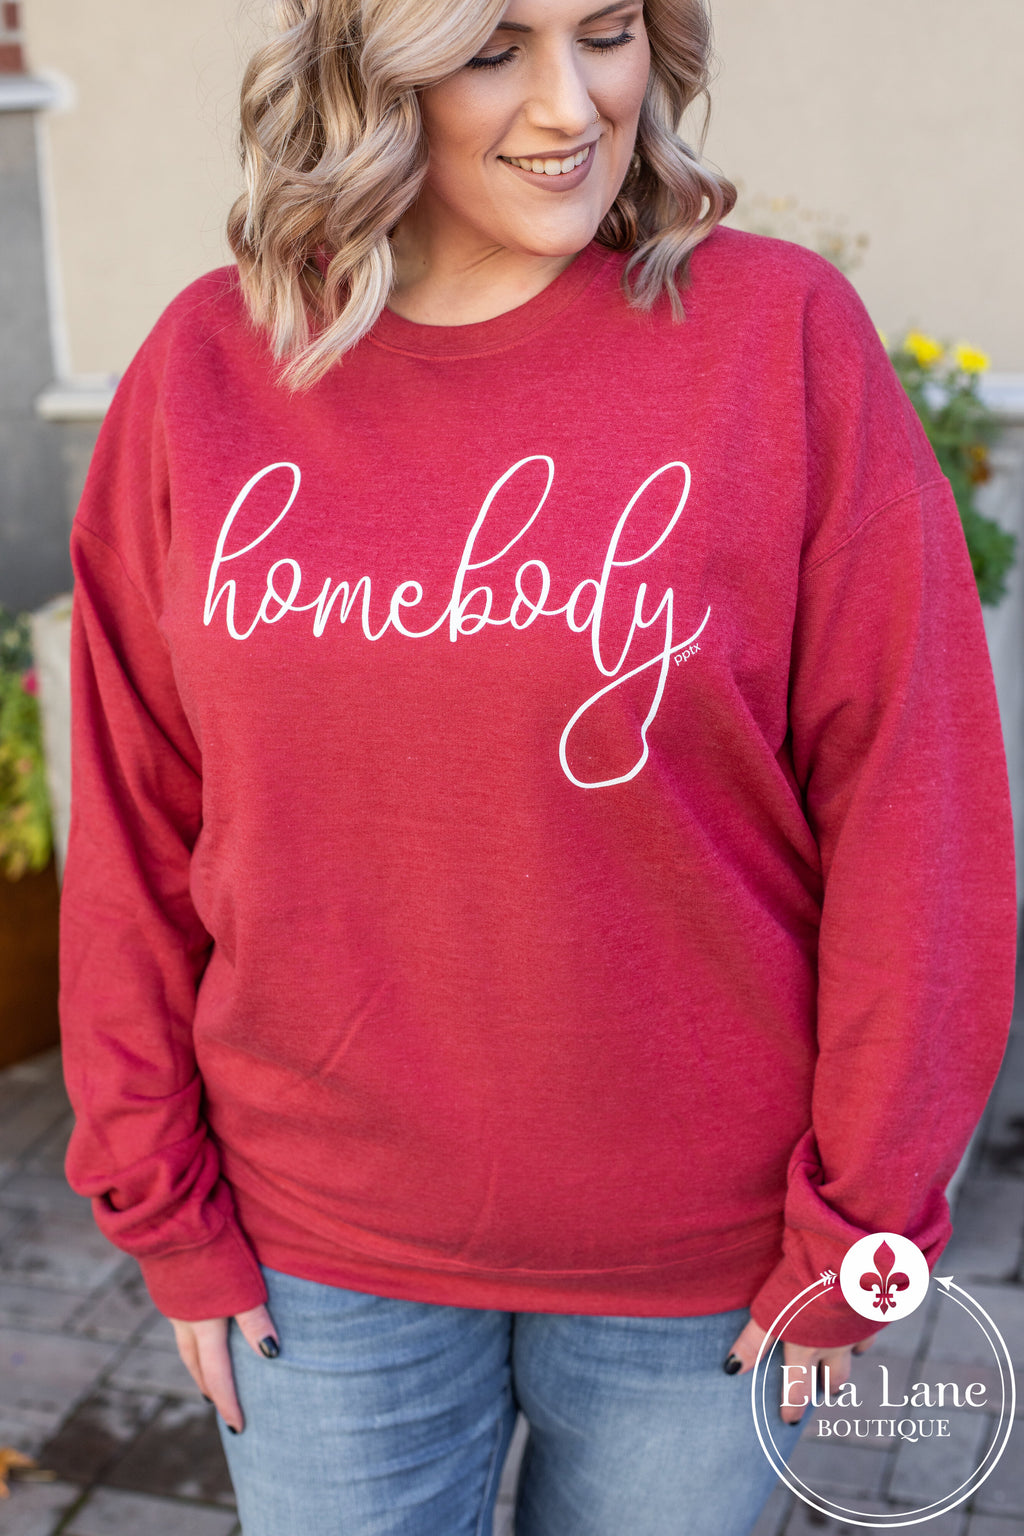 Homebody Pullover Sweatshirt - Red